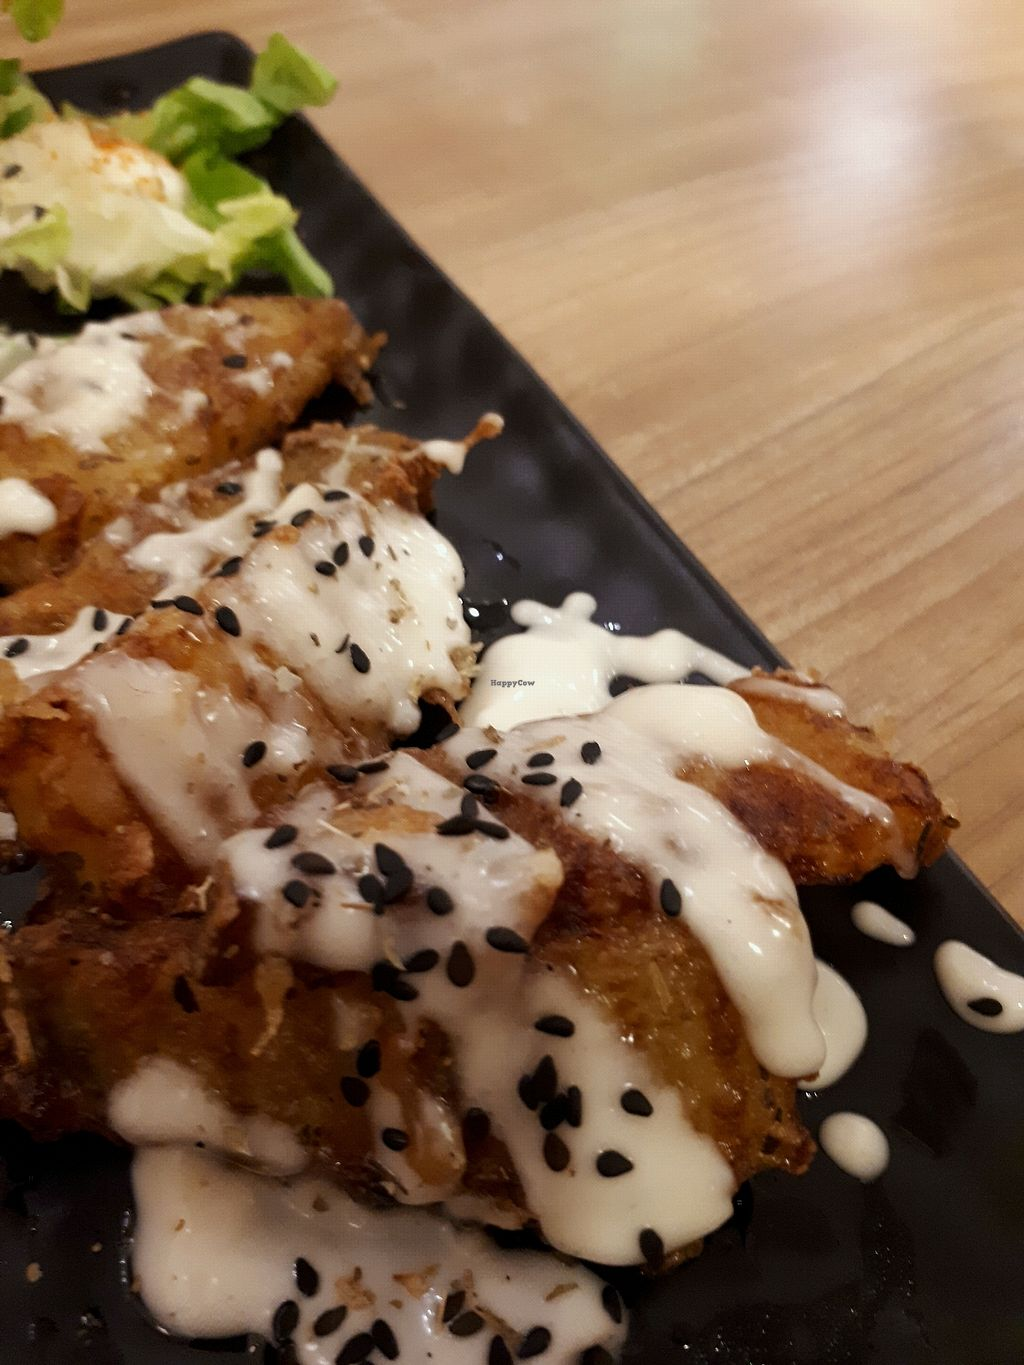 """Photo of Sushi Kitchen - Plaza Gurney  by <a href=""""/members/profile/healin"""">healin</a> <br/>Potato wedges <br/> October 30, 2017  - <a href='/contact/abuse/image/85510/320072'>Report</a>"""